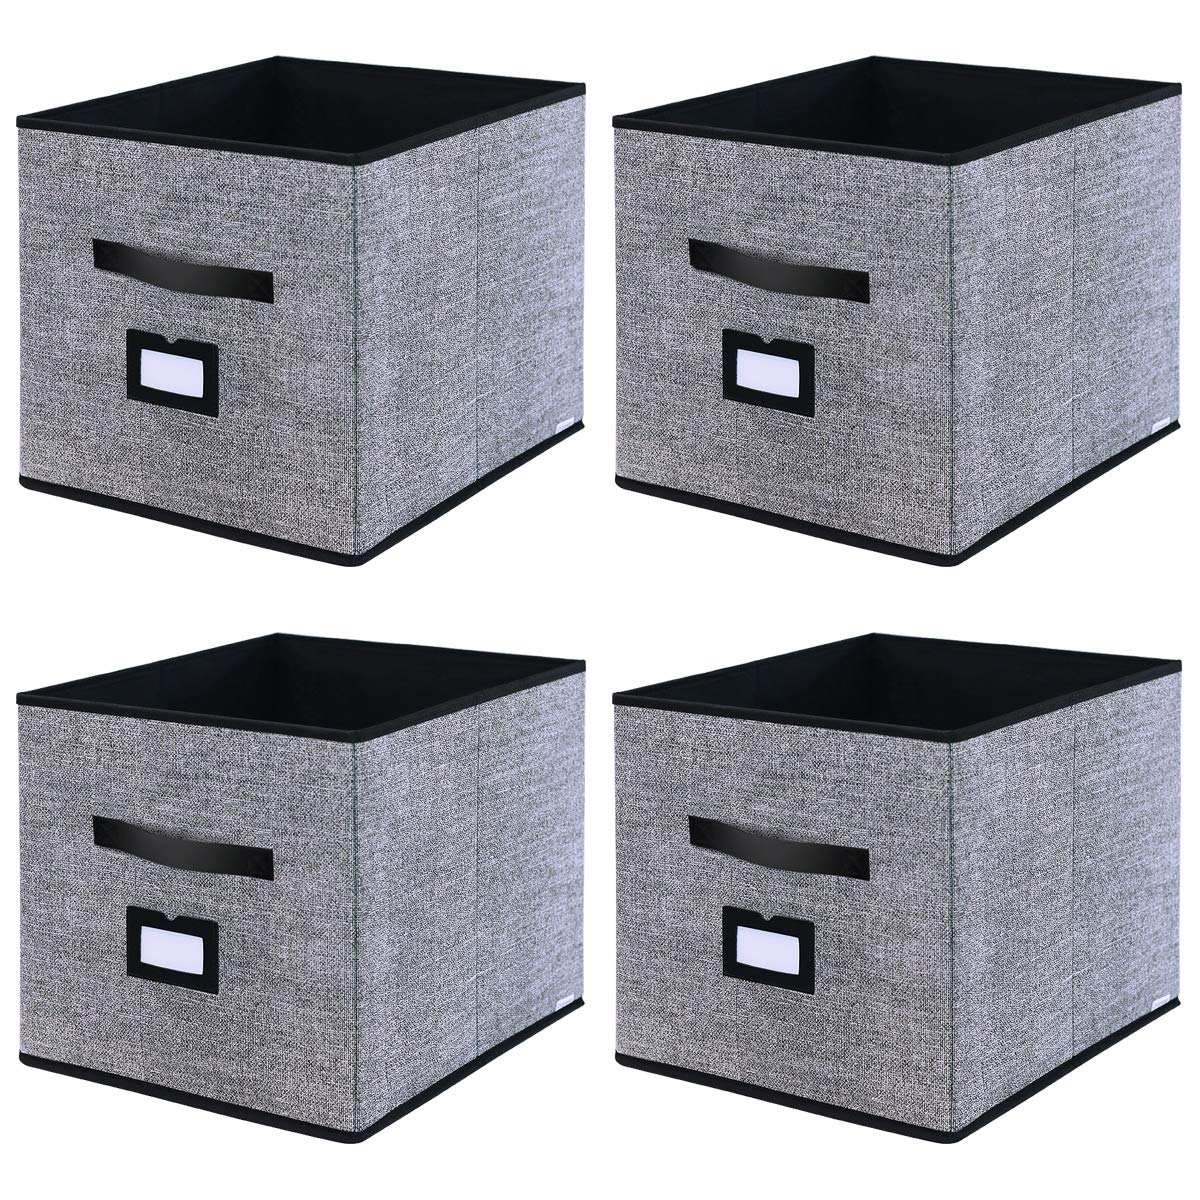 """Onlyeasy Foldable Cloth Storage Cubes with Label Holders - Fabric Storage Bins Baskets Organizers for Home Office Nursery Cubby with Dual Leather Handles, 13""""x15""""x13"""", 4 Pack Black, MXABXL04PLP"""